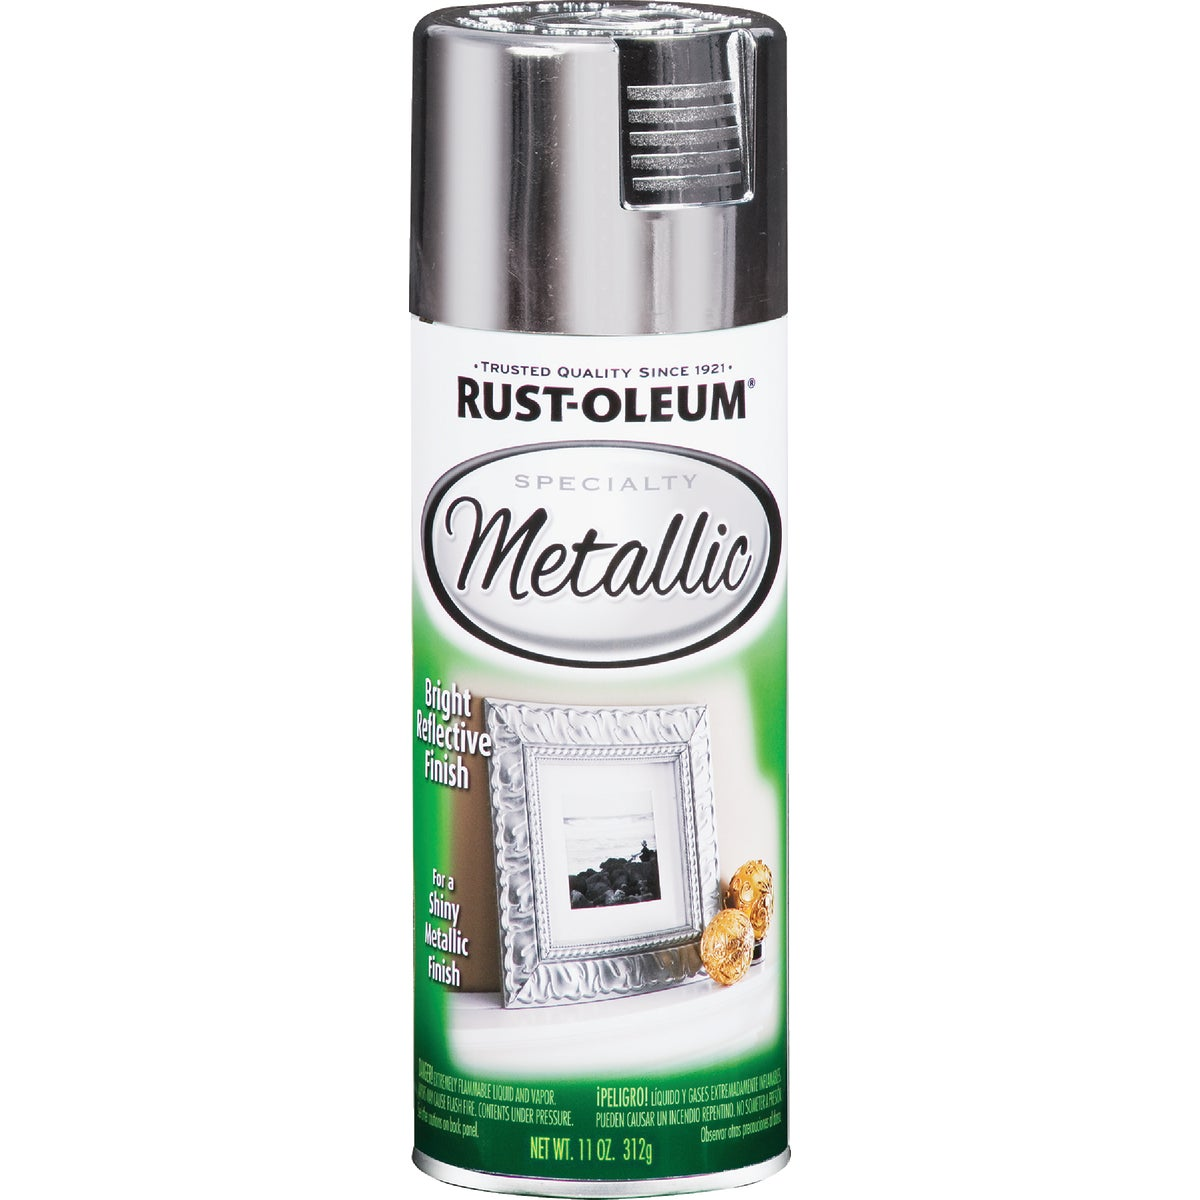 SLVR METALIC SPRAY PAINT - 1915-830 by Rustoleum